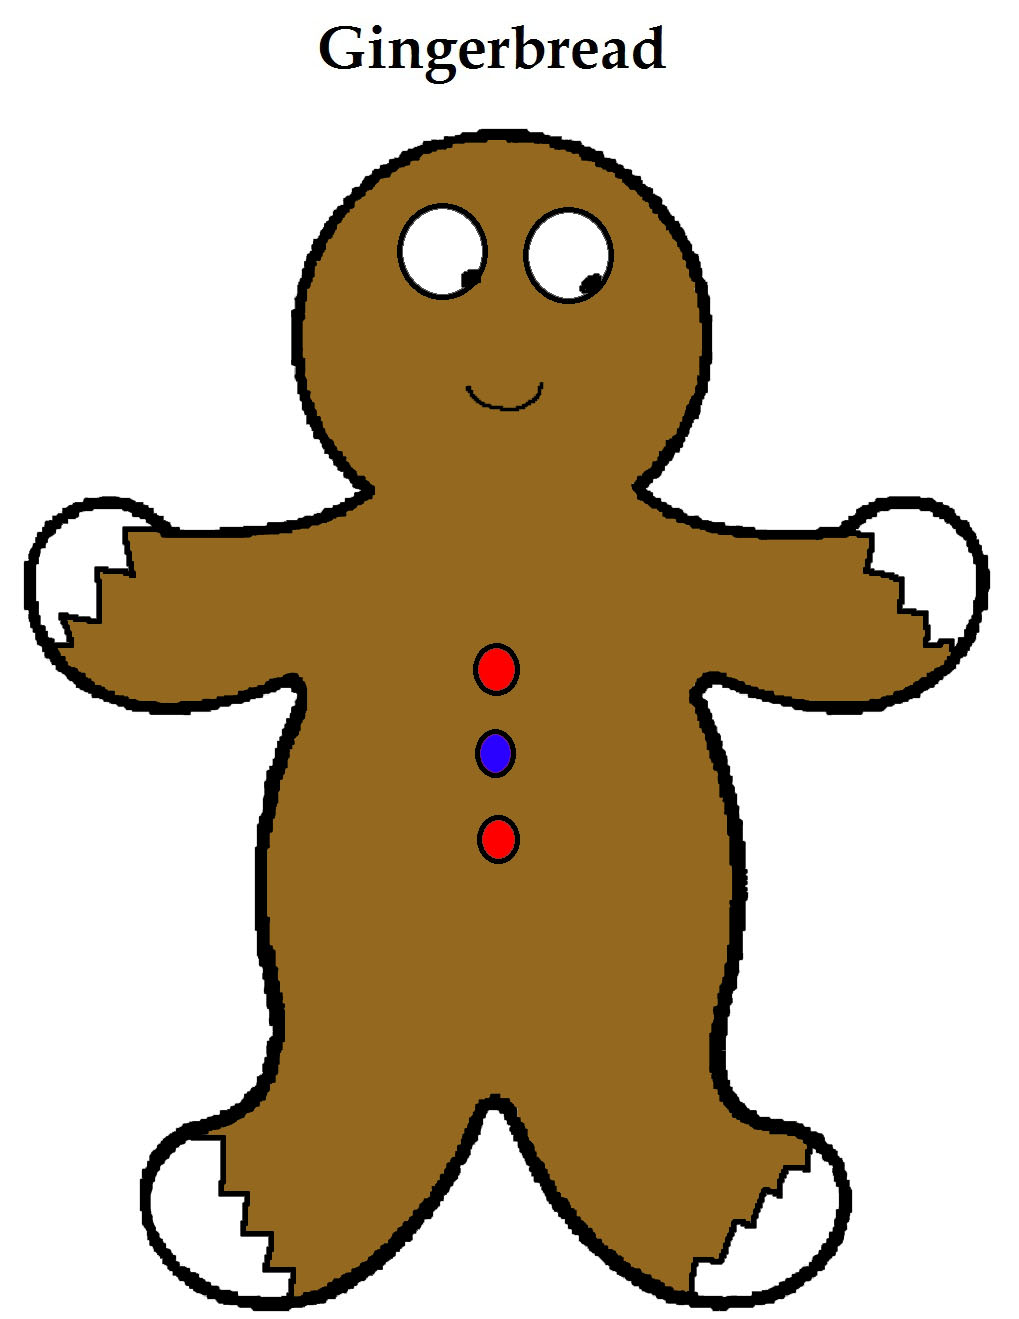 Free Gingerbread Christmas Doorknob Hangers For Kids in Sunday School or Children's Church By Church House Collection- Printable Cutout Template Gingerbread Man